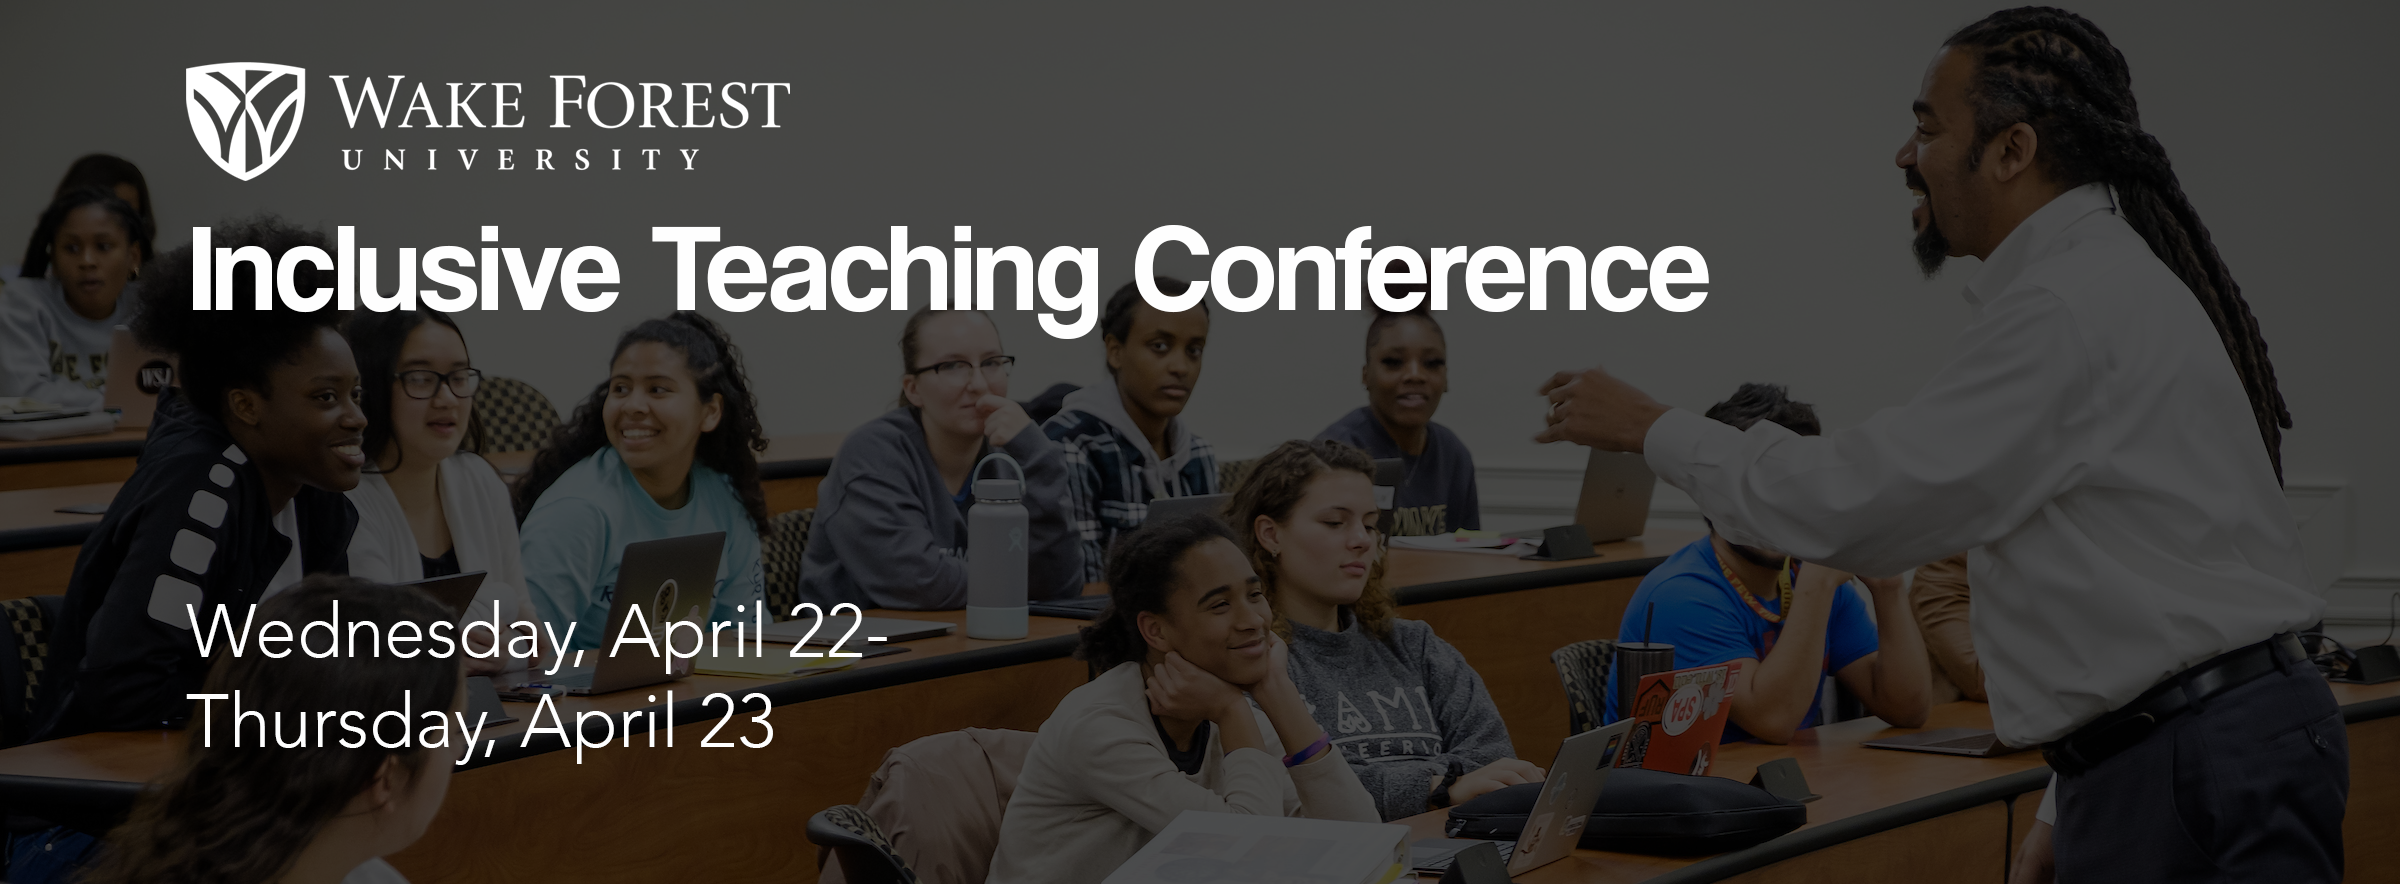 Inclusive Teaching Conference